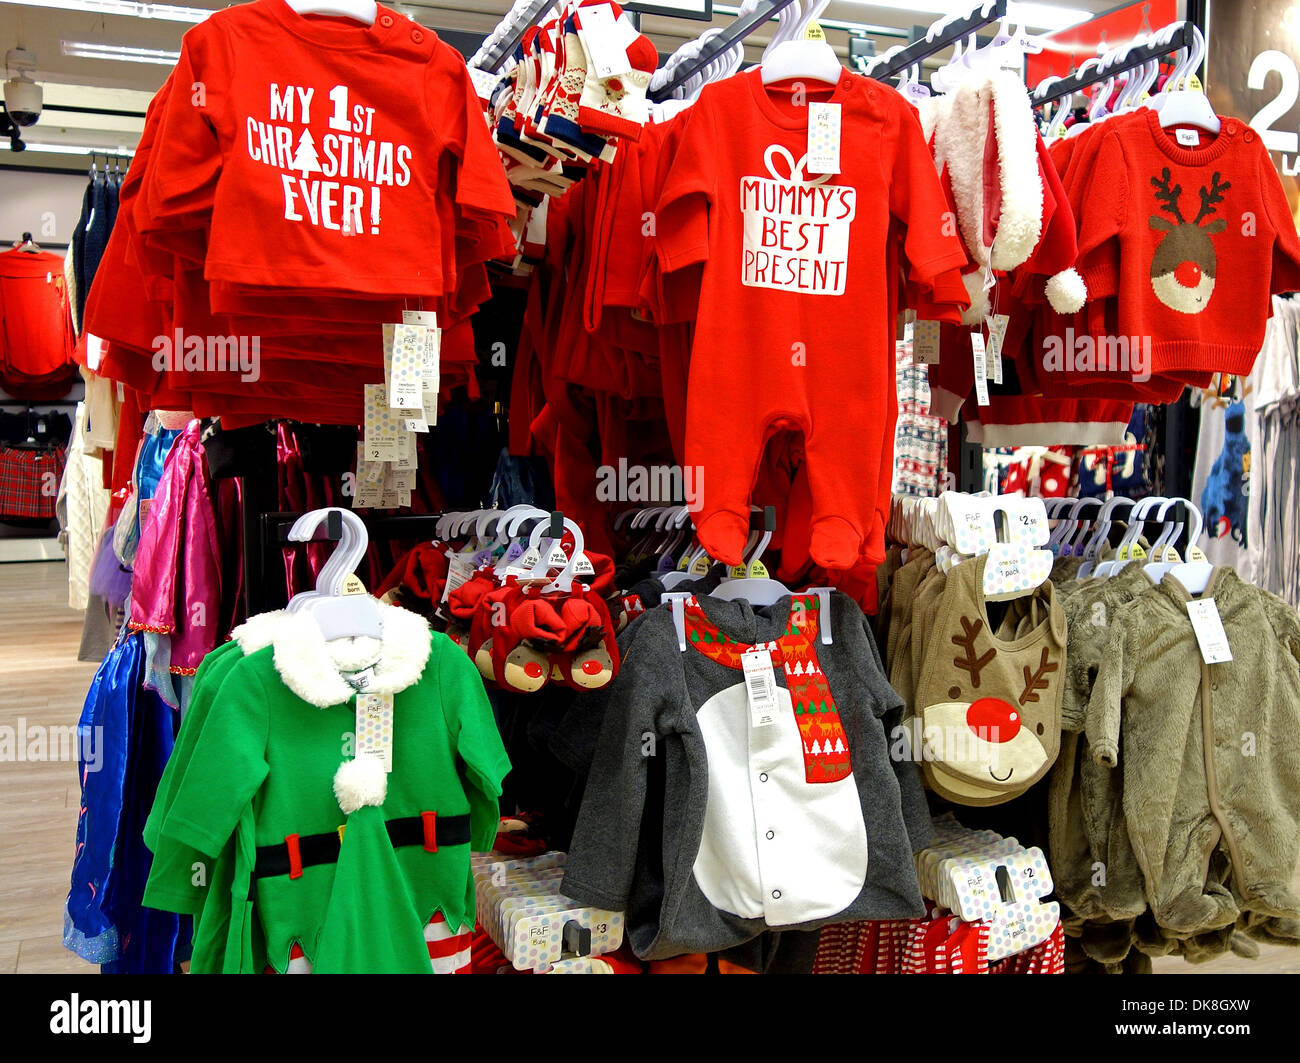 b6df62c2a0f4 Christmas design baby clothes in a Tesco store, UK Stock Photo ...